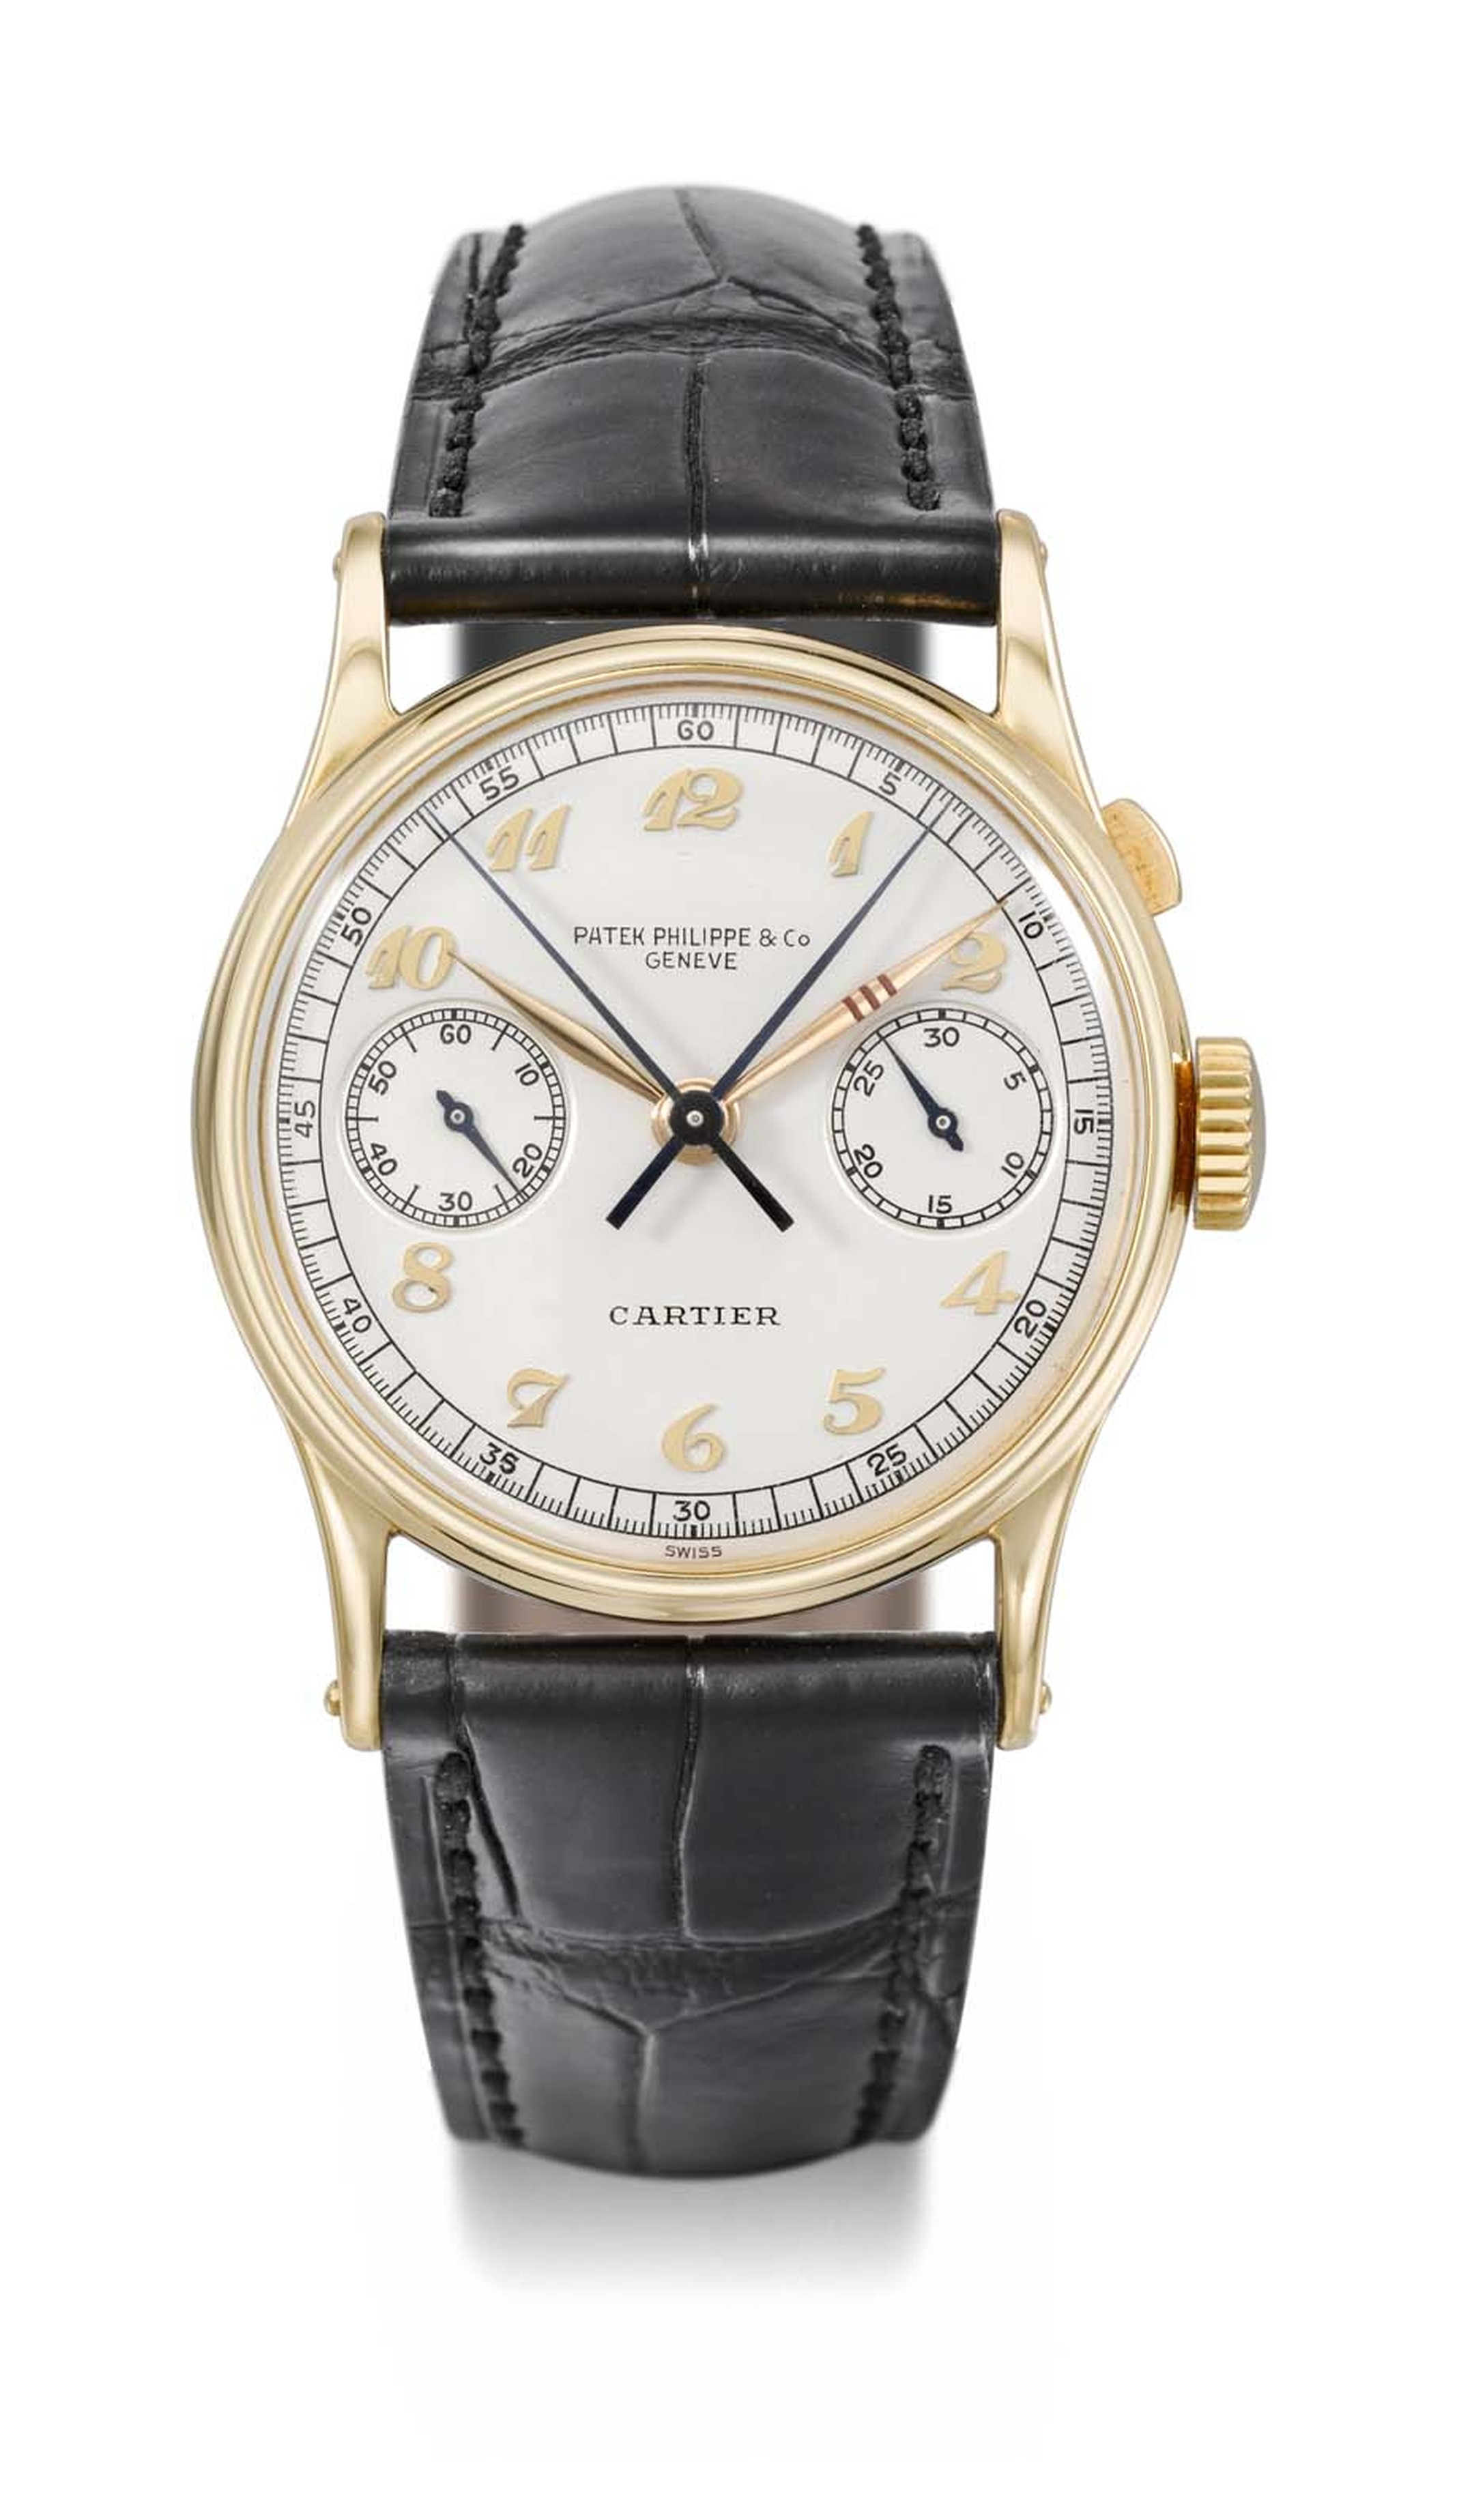 "Christie's auction will include the Patek Philippe watch ""The Boeing"" Reference 130, a rare gold wristwatch with a split-seconds chronograph."